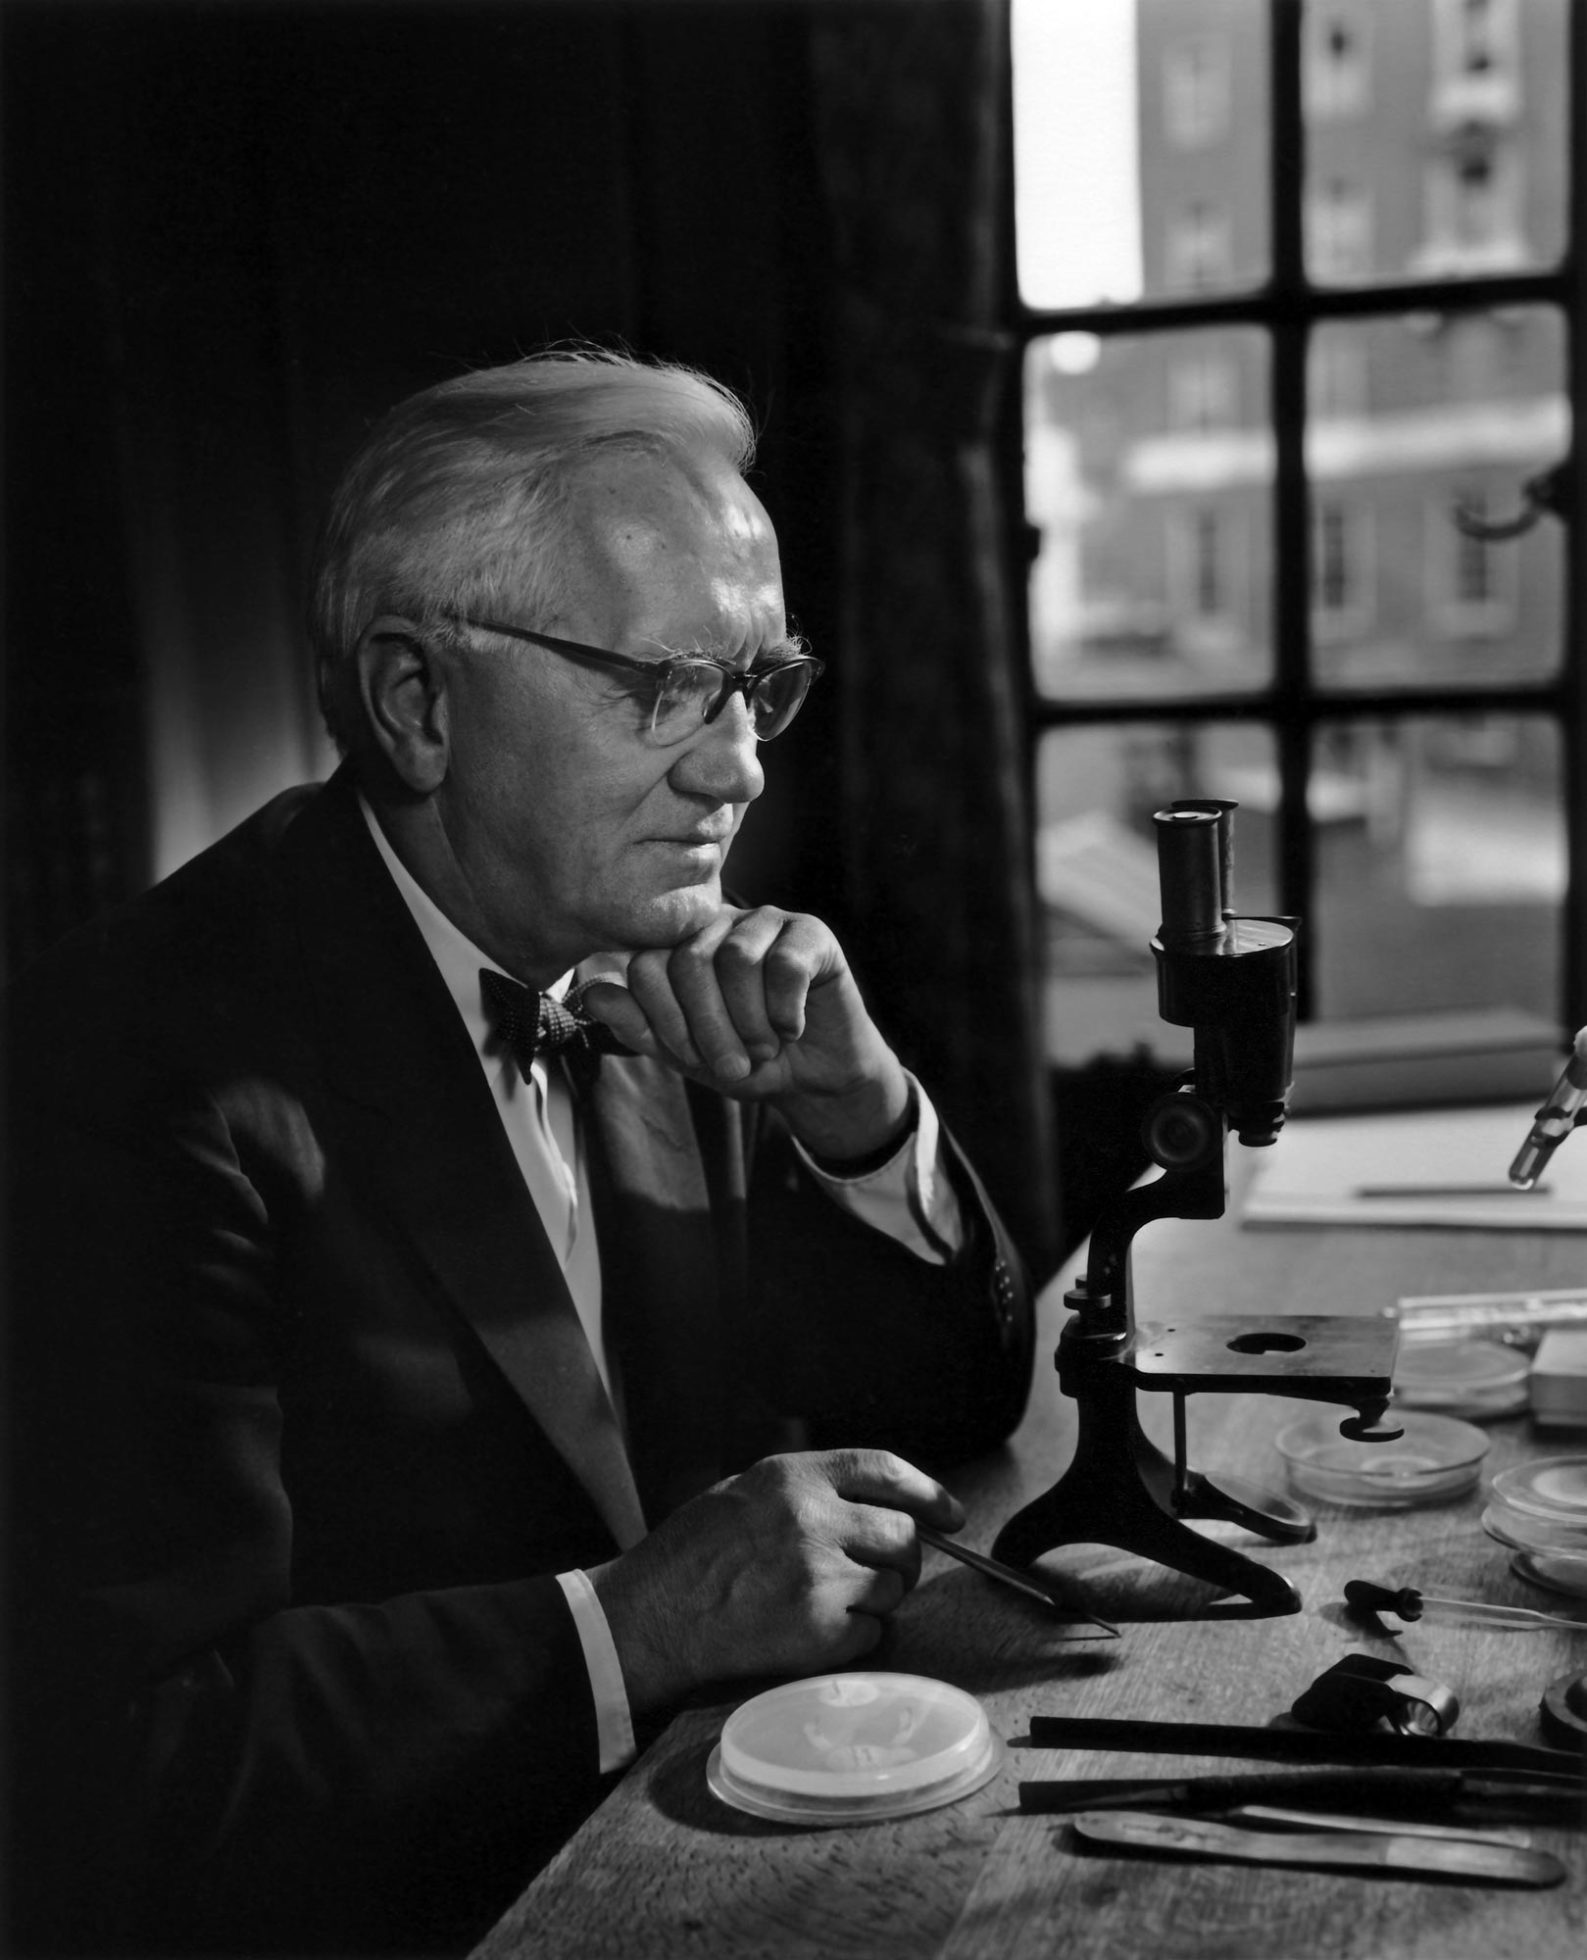 sir alexander fleming Alexander fleming biography - alexander fleming discoveredpenicillin sir alexander fleming was a scottish bacteriologist who revolutionized modern medicine with his discovery of penic.